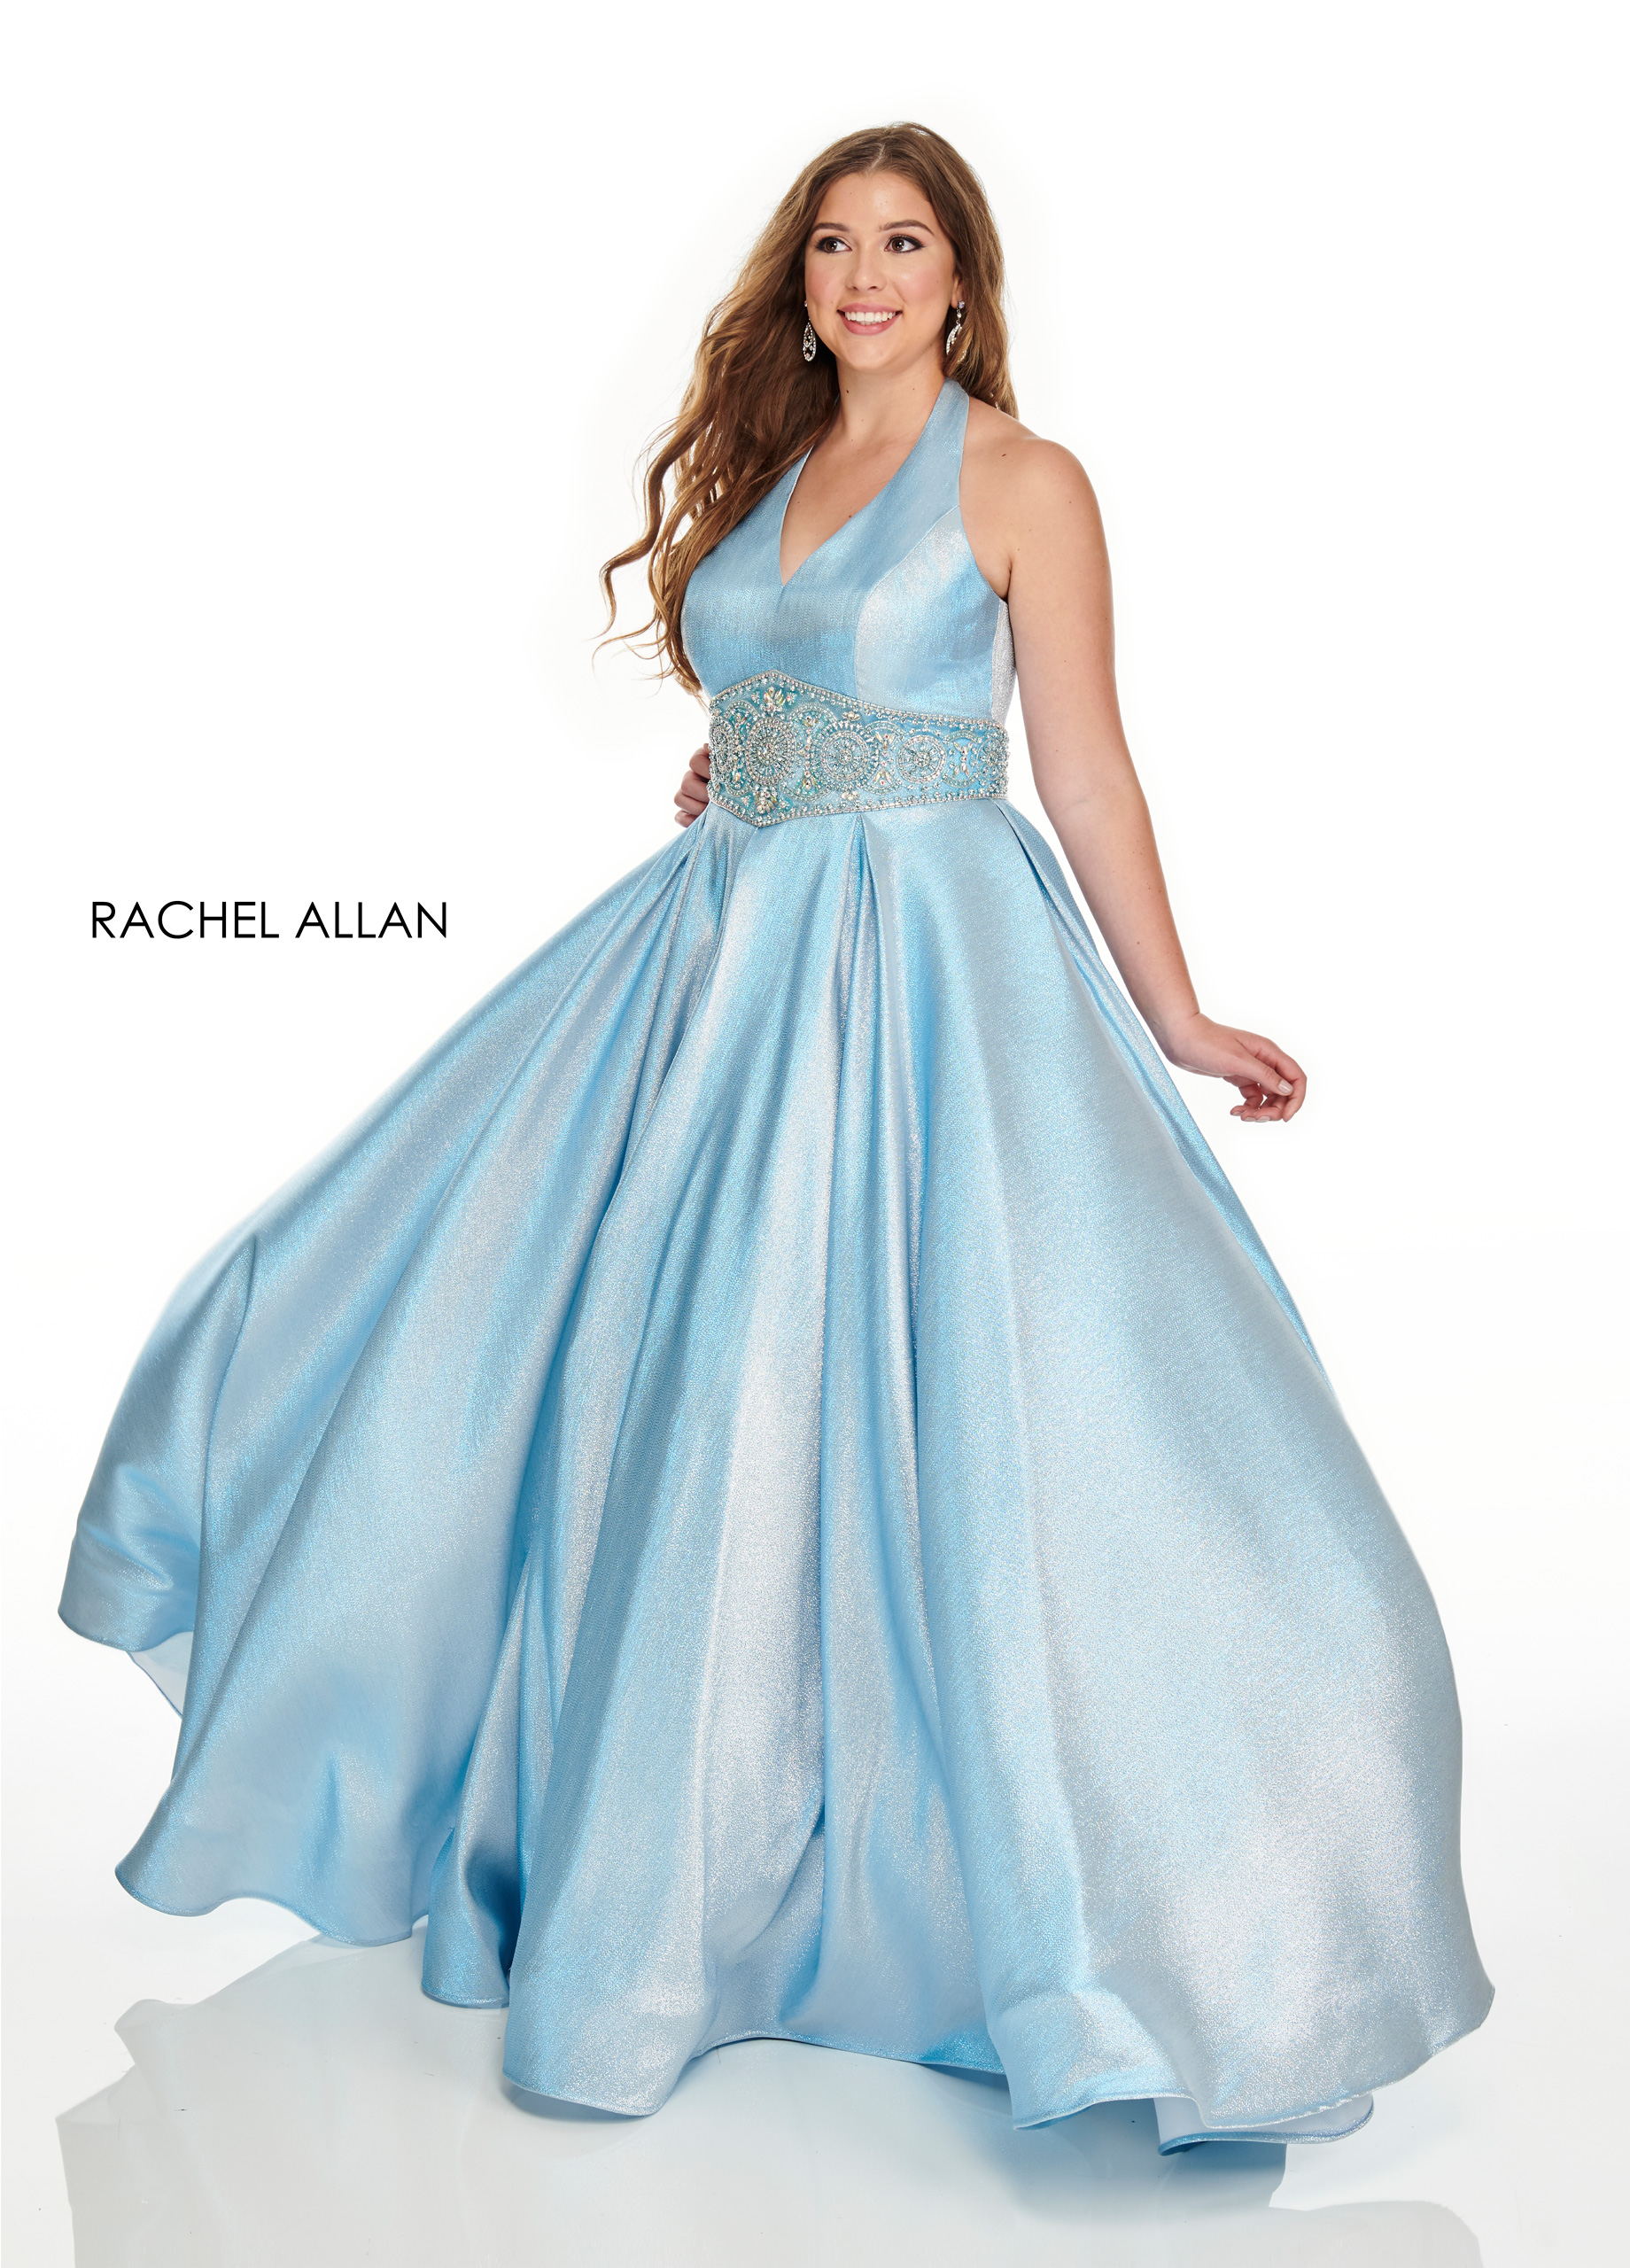 Halter Ball Gowns Plus Size Dresses in Blue Color